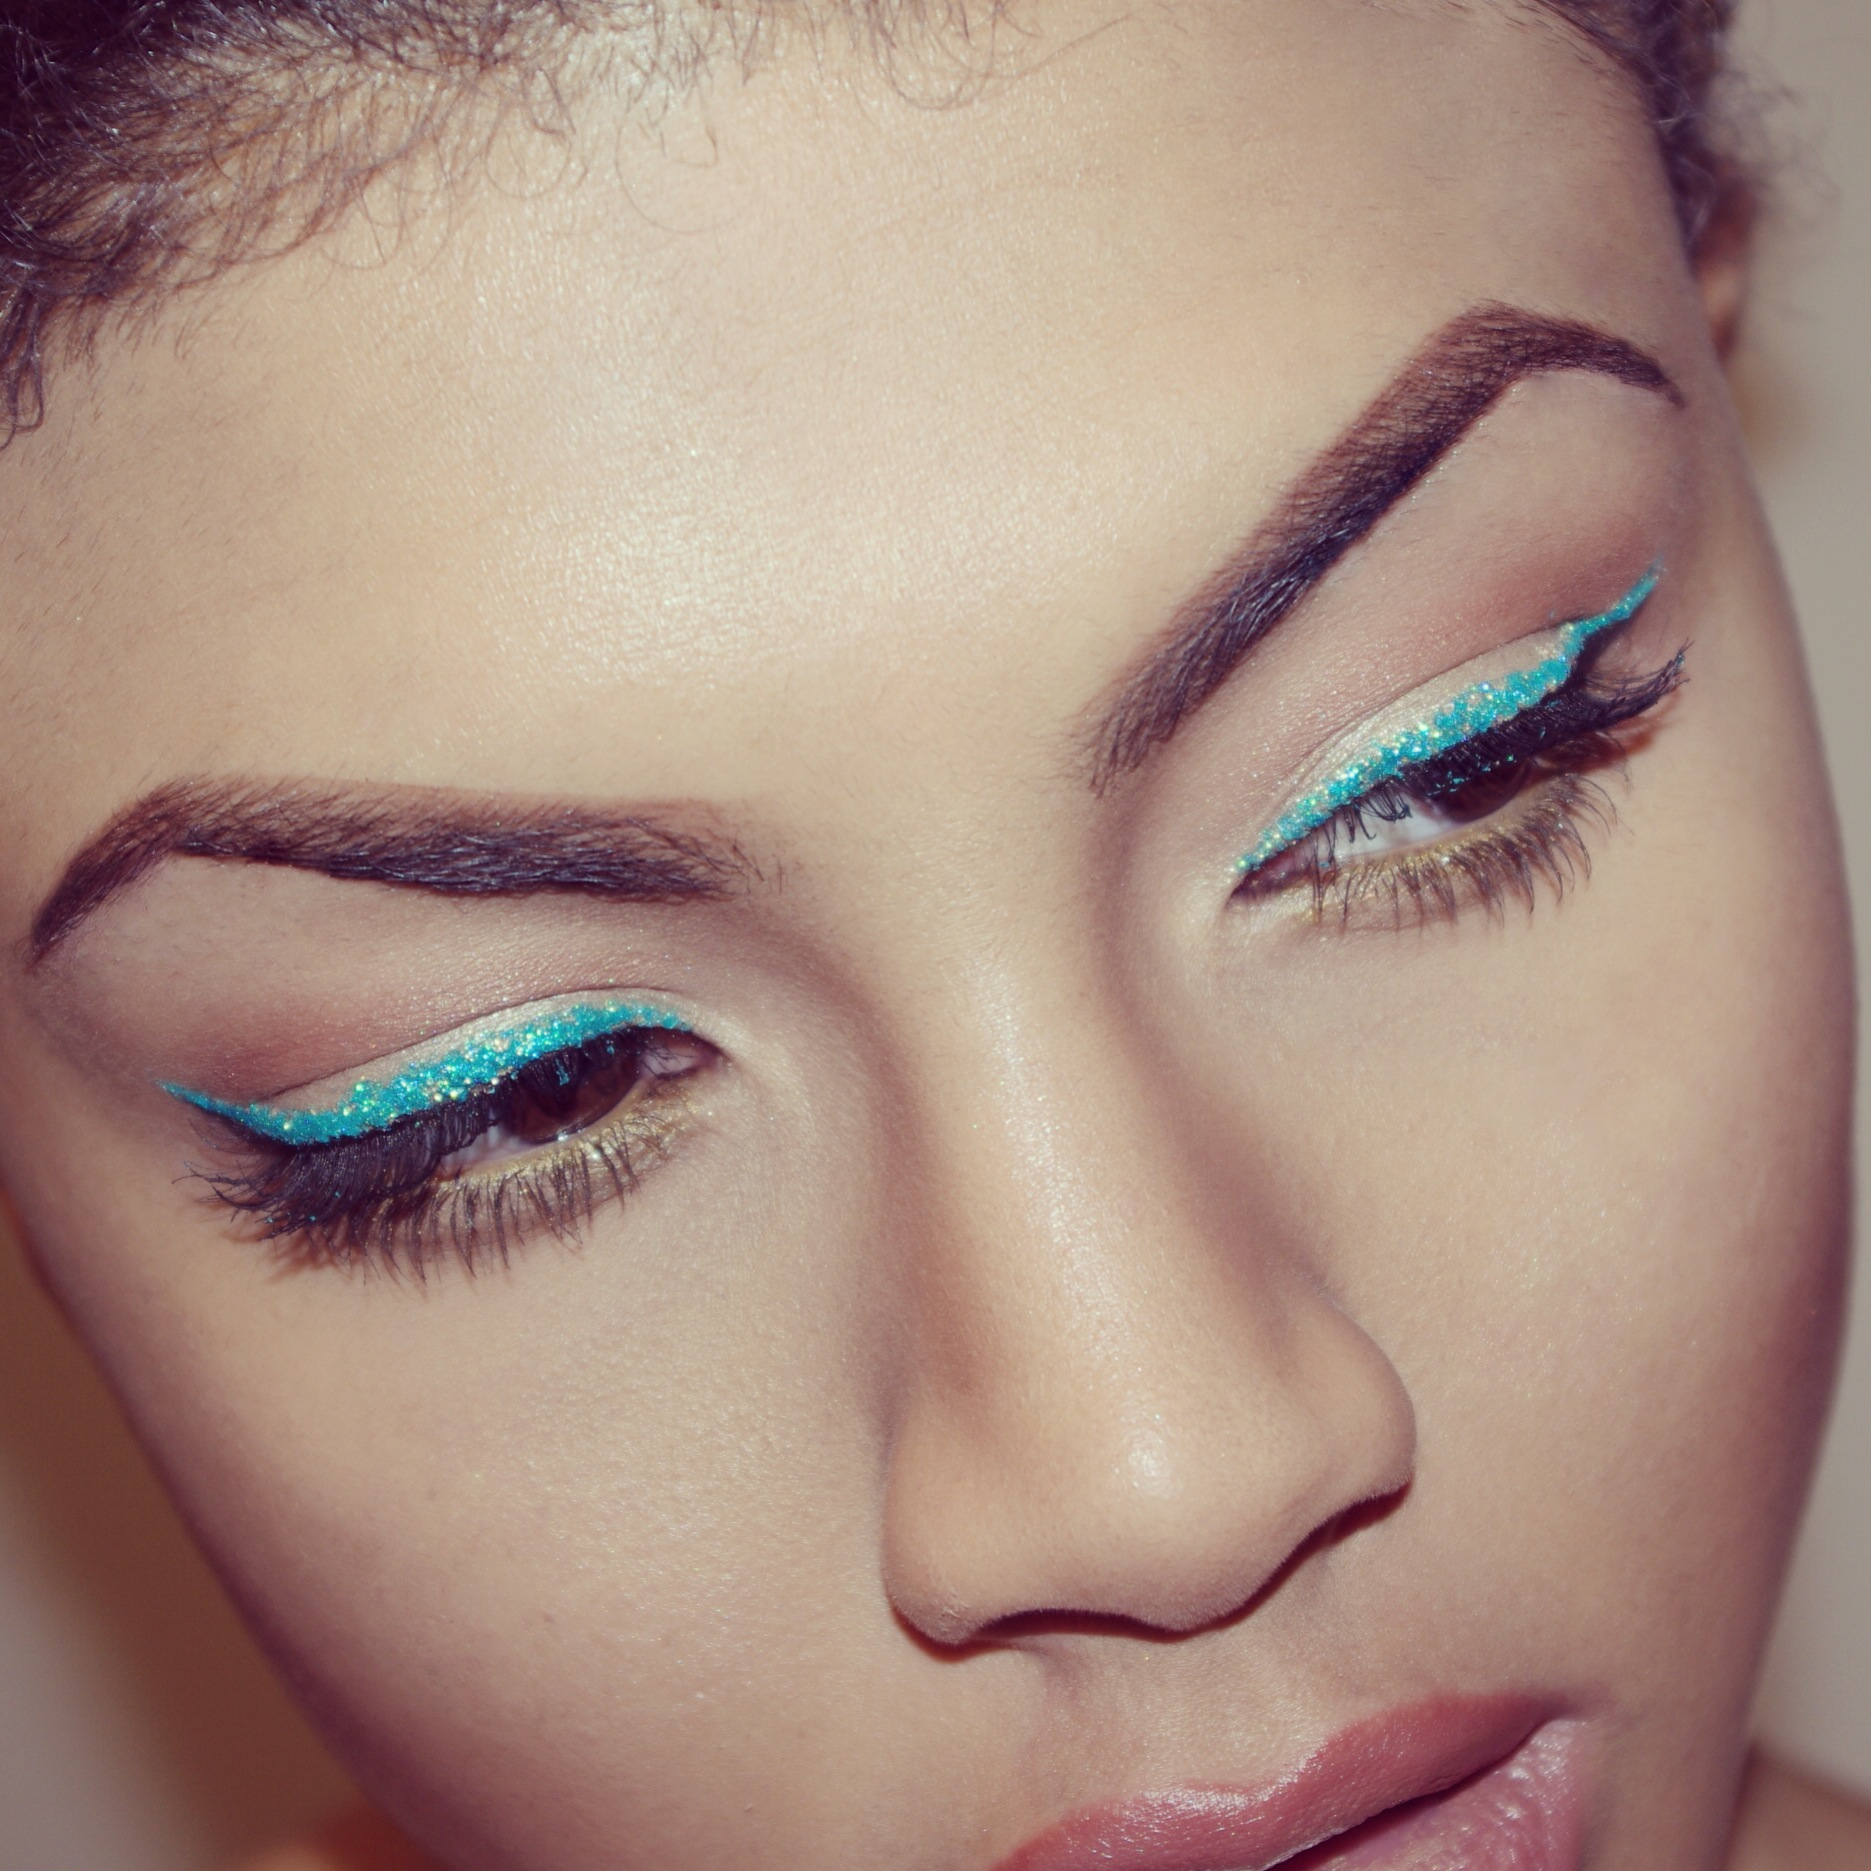 Collection Glam Crystals Dazzling Gel Liner Pizzazz Samio Makeup Tutorial